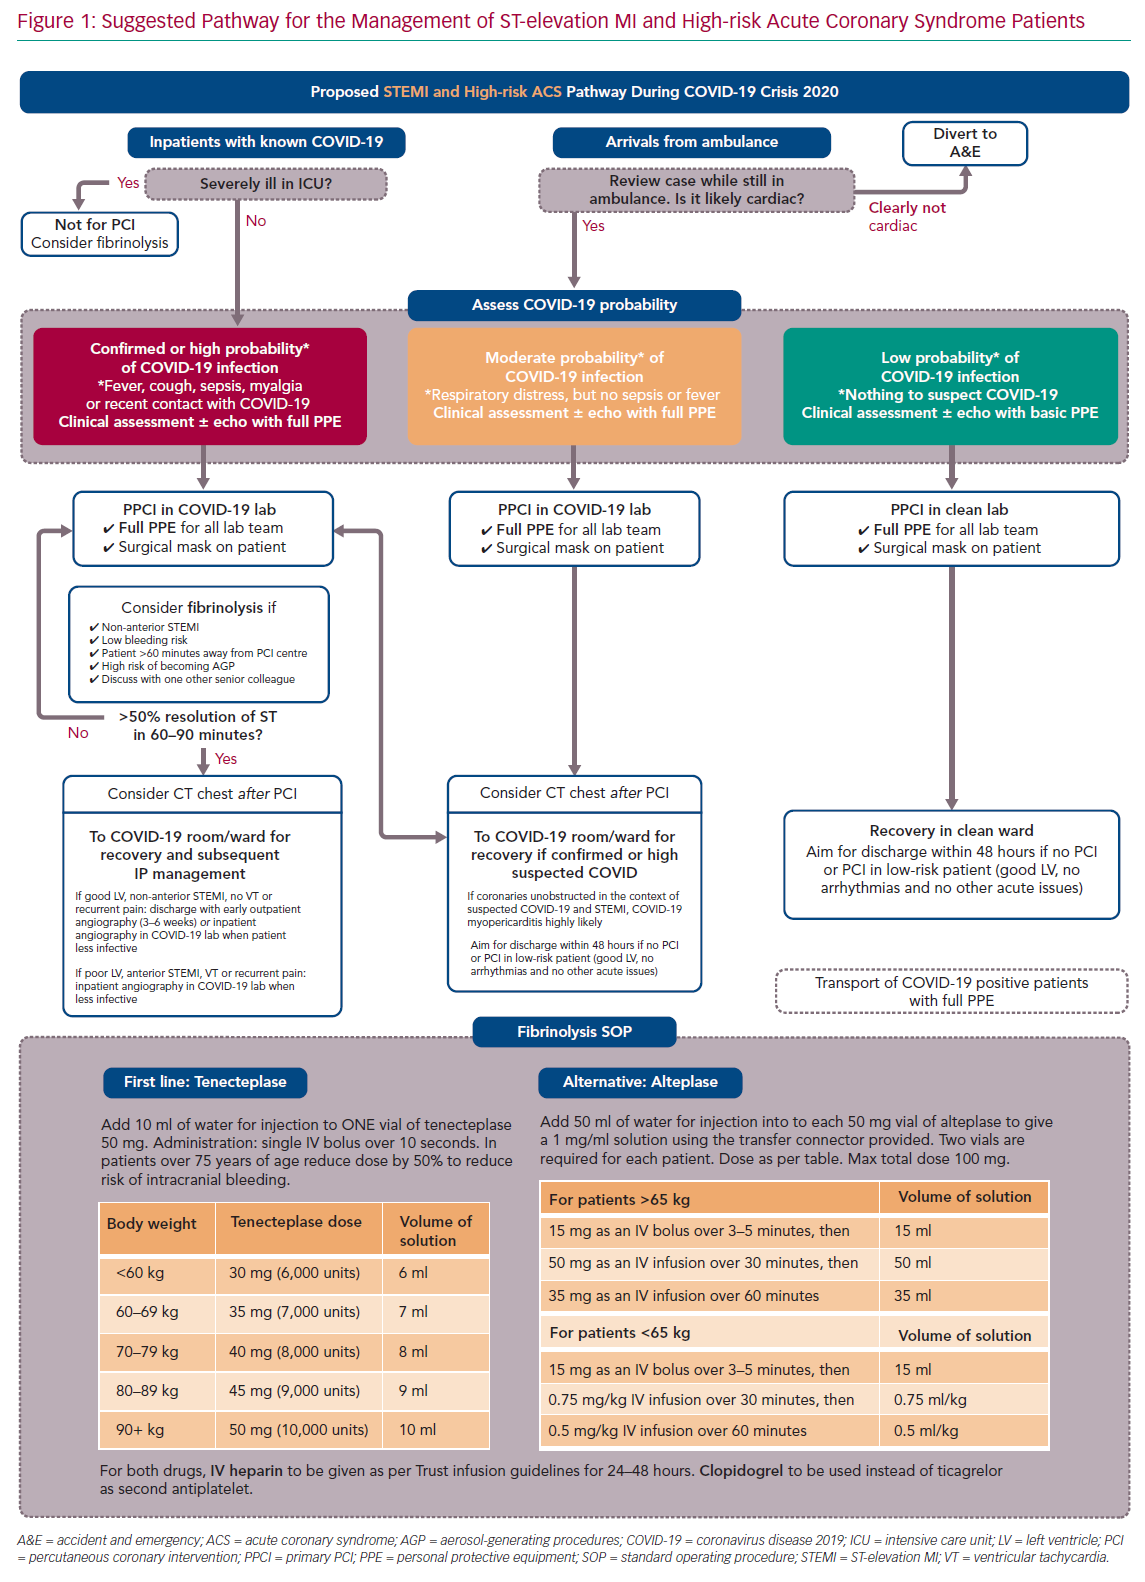 Suggested Pathway for the Management of ST-elevation MI